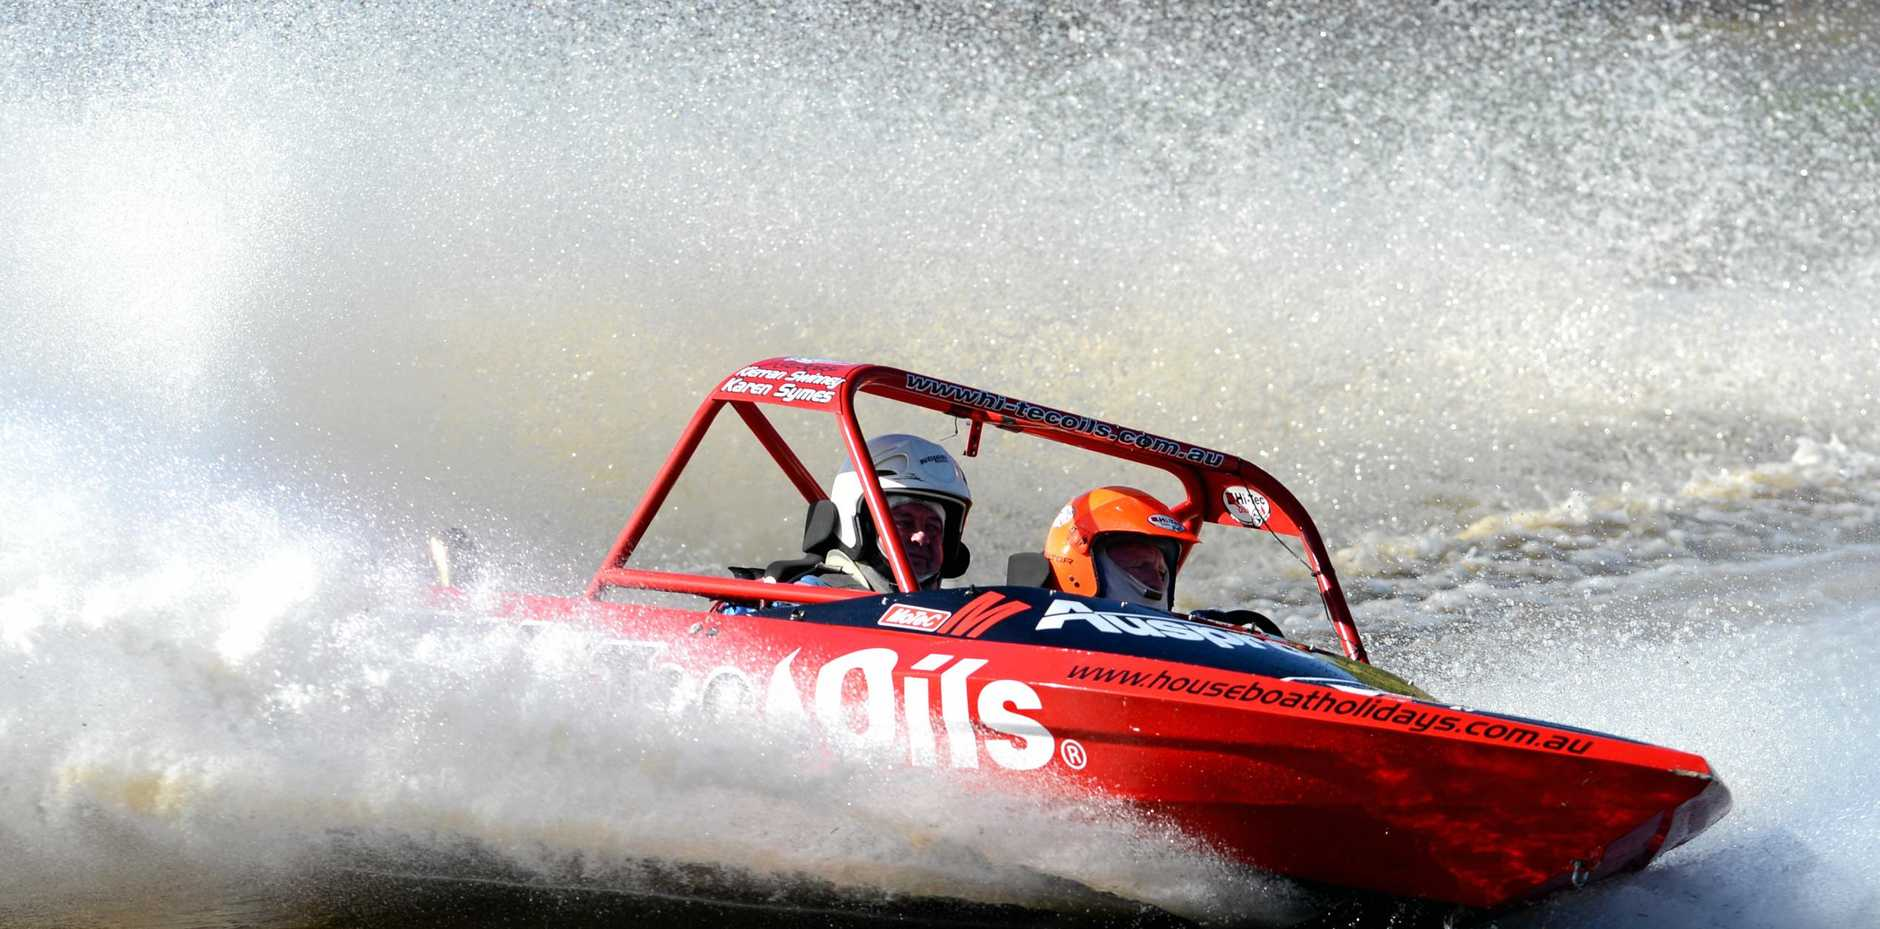 SPEED: Here's your chance to try jet boating.